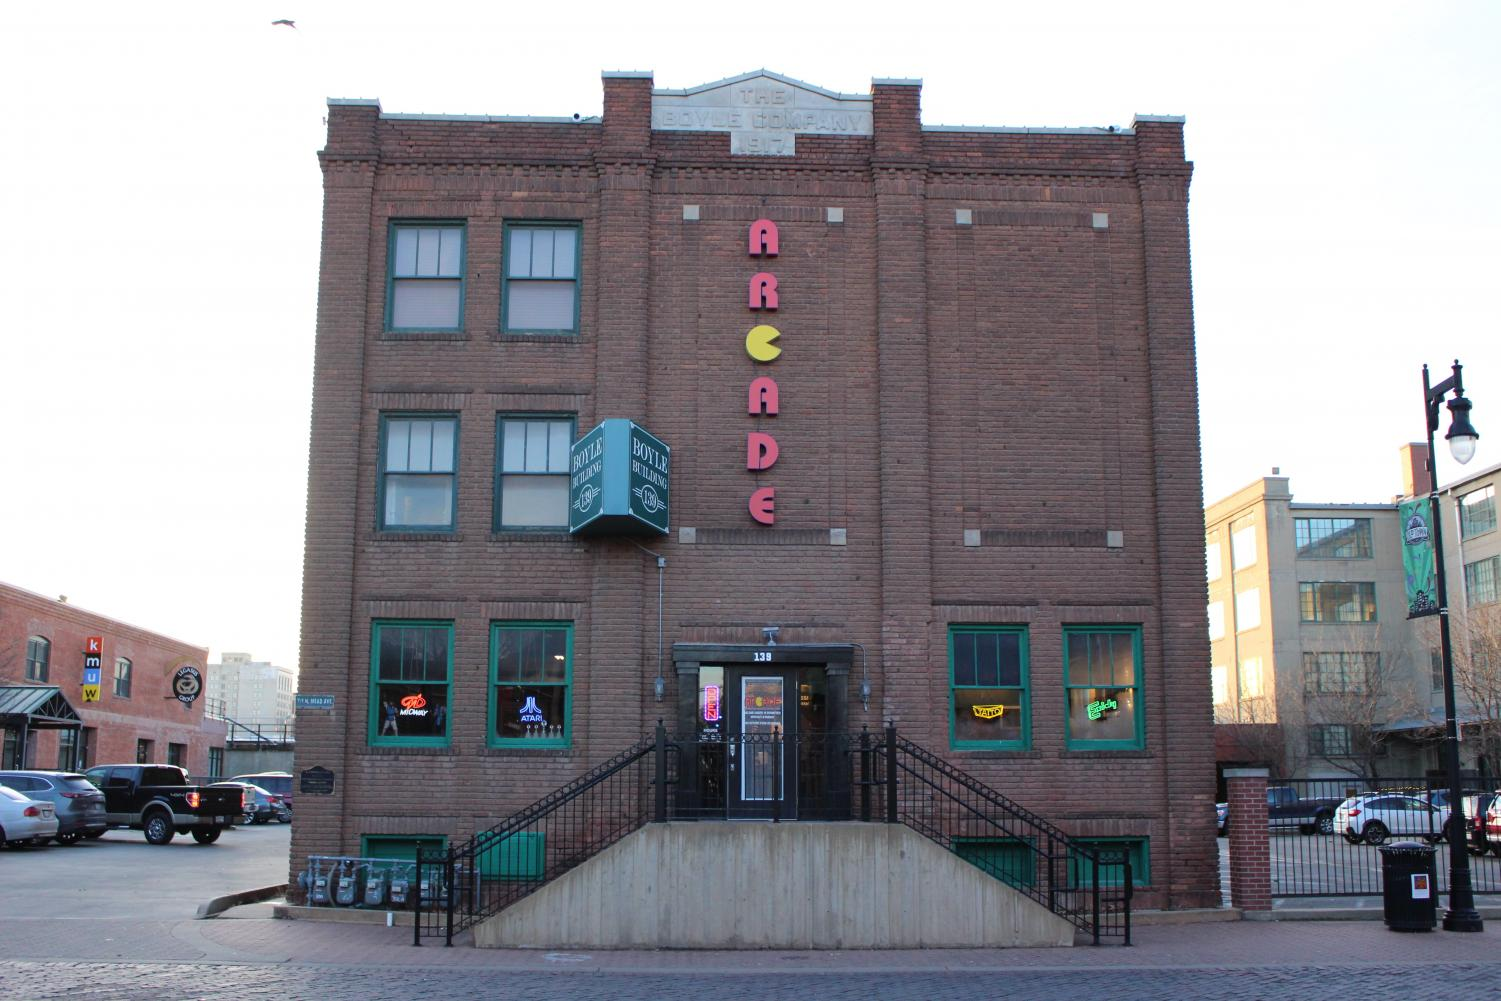 Located at 139 N. Mead, The Arcade is home to more than 70 arcade cabinets. photos by Isaac Caire